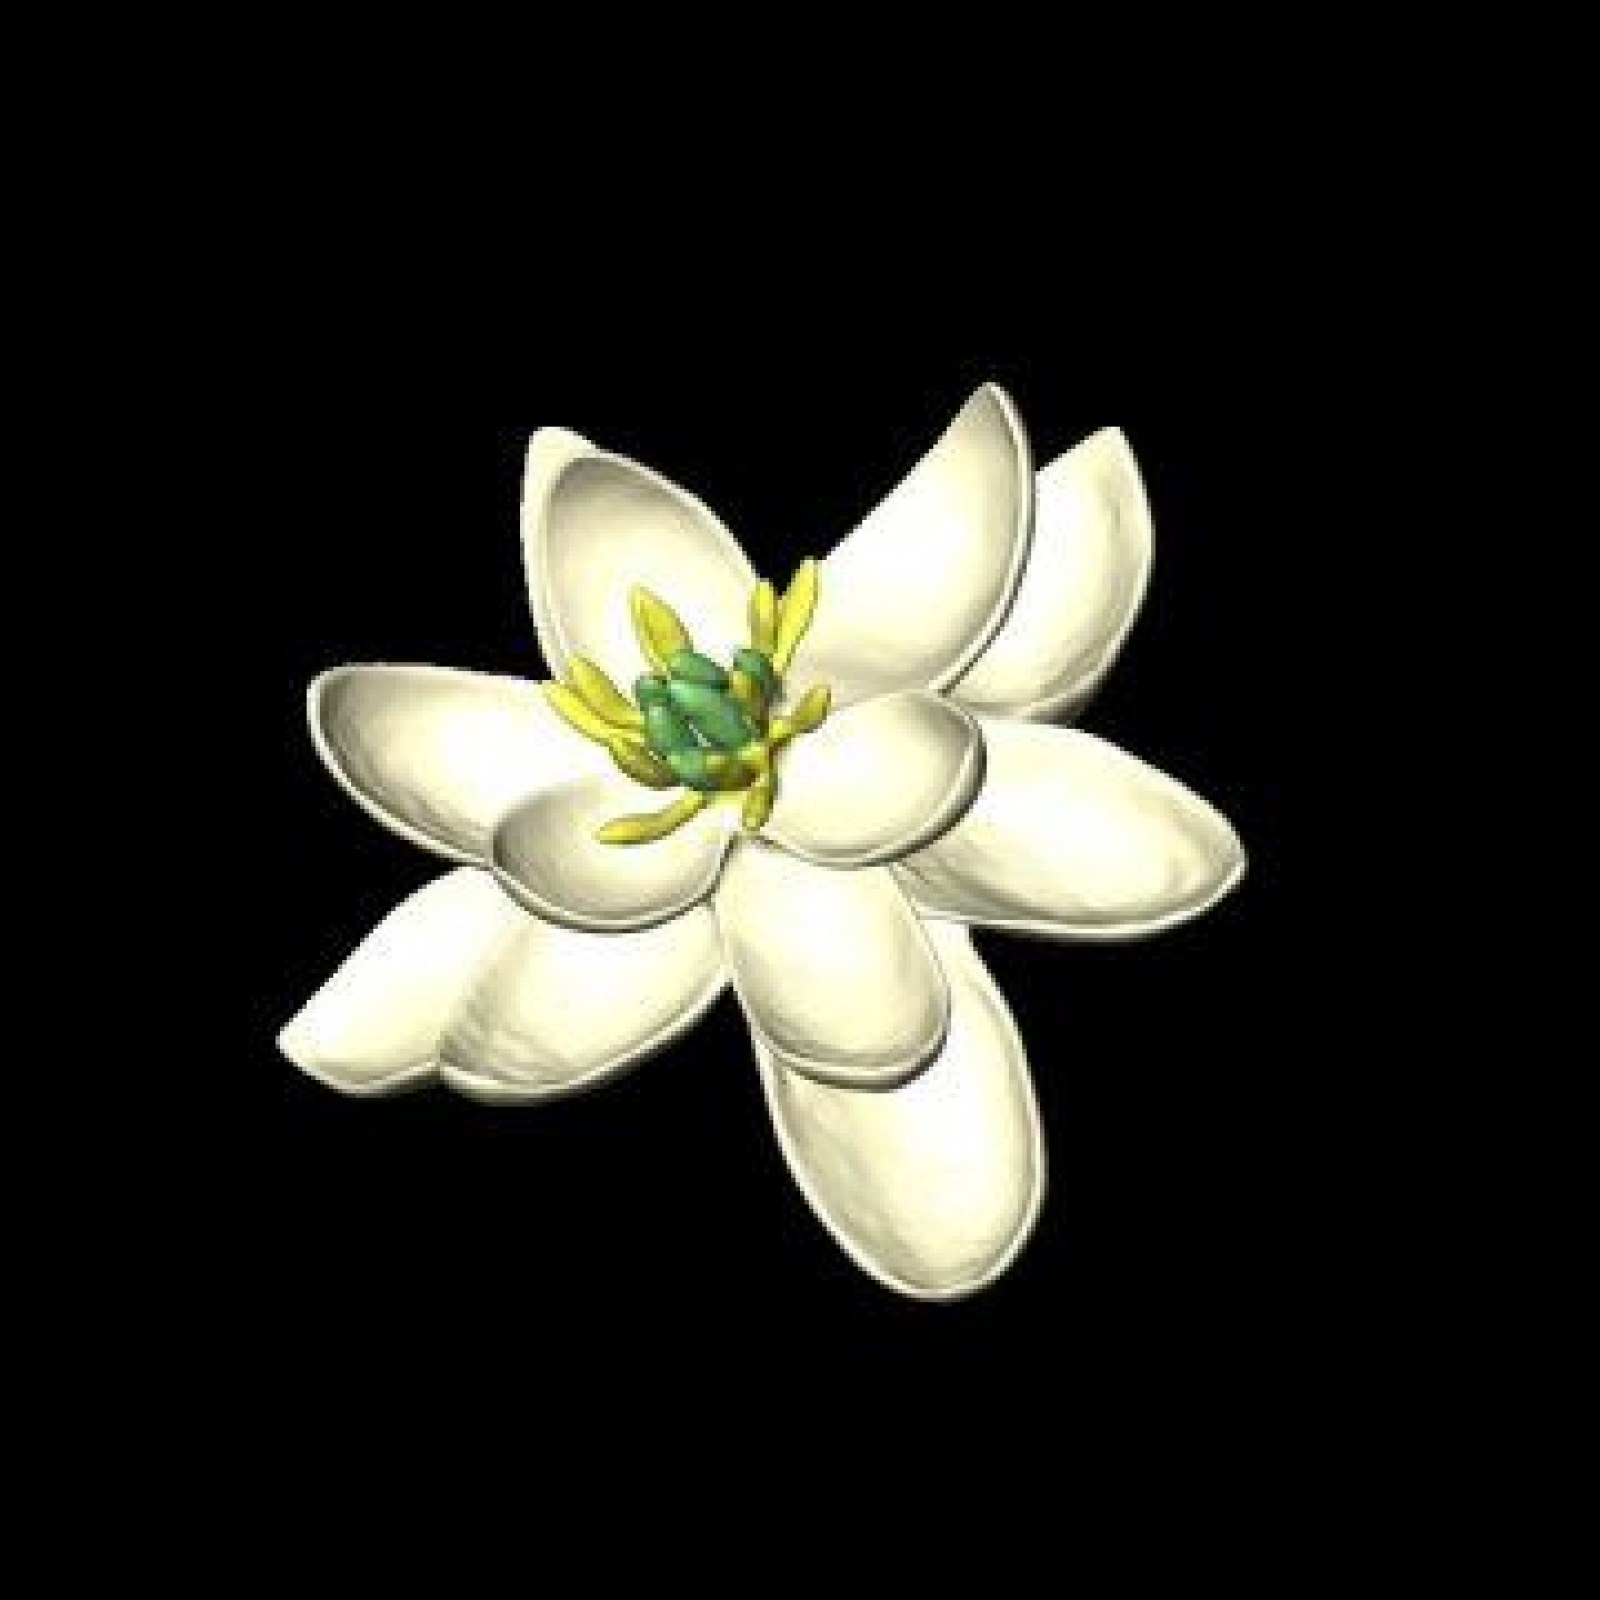 First Flower On Earth Scientists Discover Structure And Shape Of